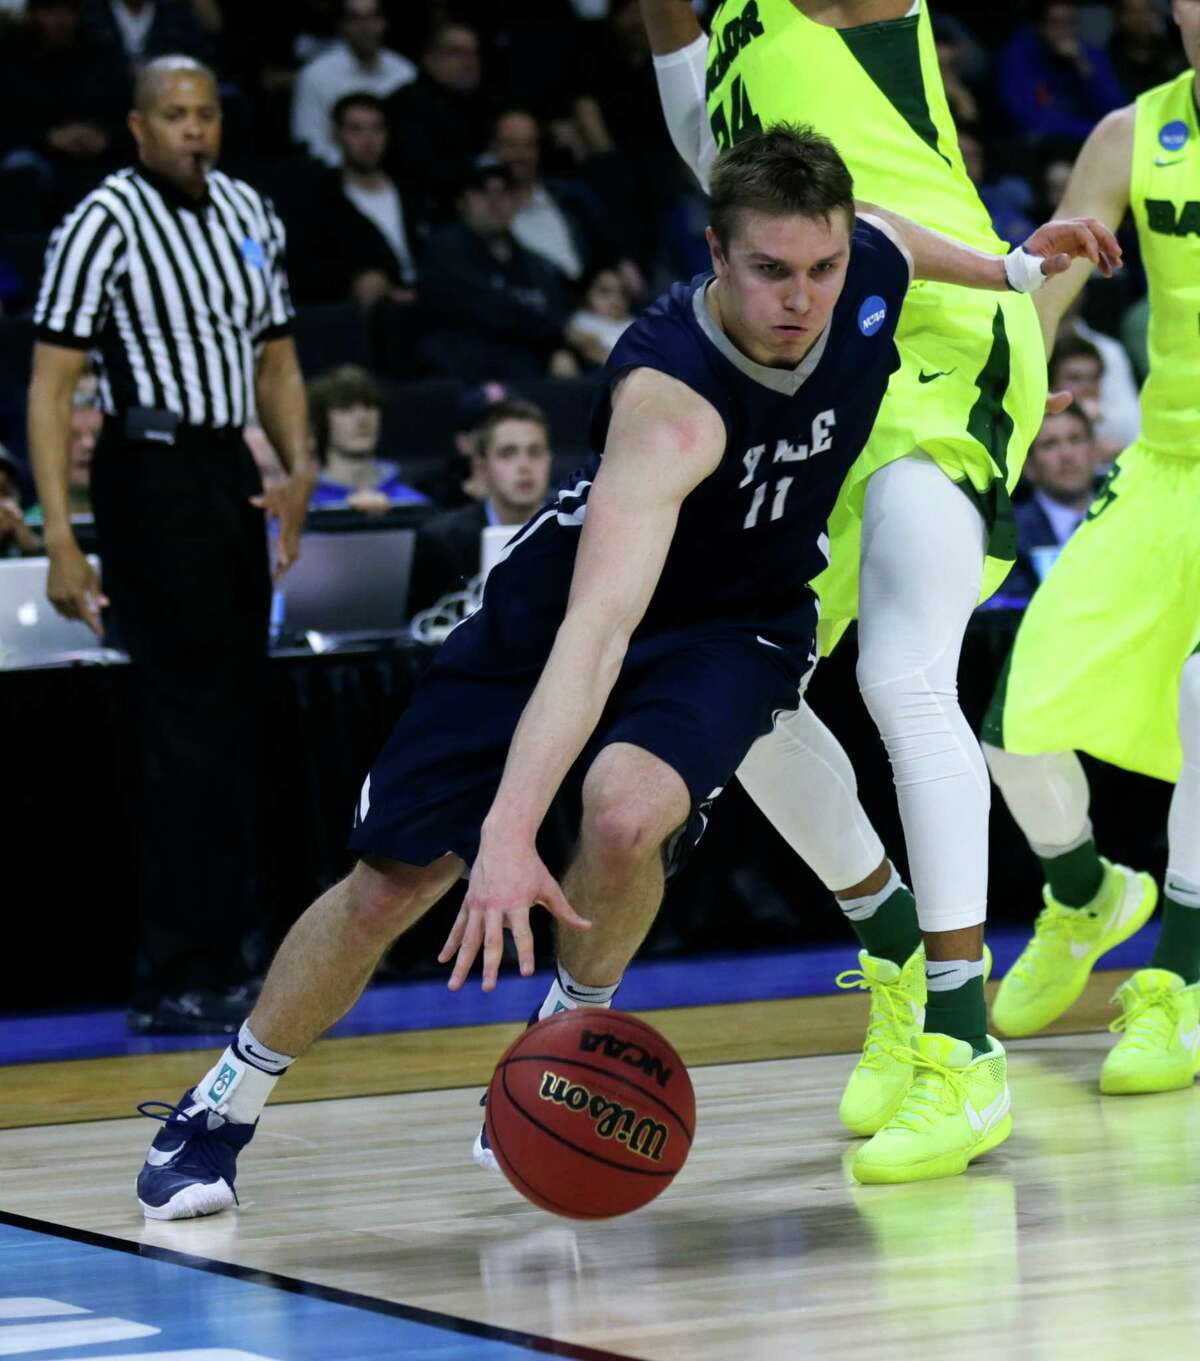 Yale guard Makai Mason (11) in the second half during the first round of the NCAA college men's basketball tournament in Providence, R.I., Thursday, March 17, 2016. Yale defeated Baylor 79-75.